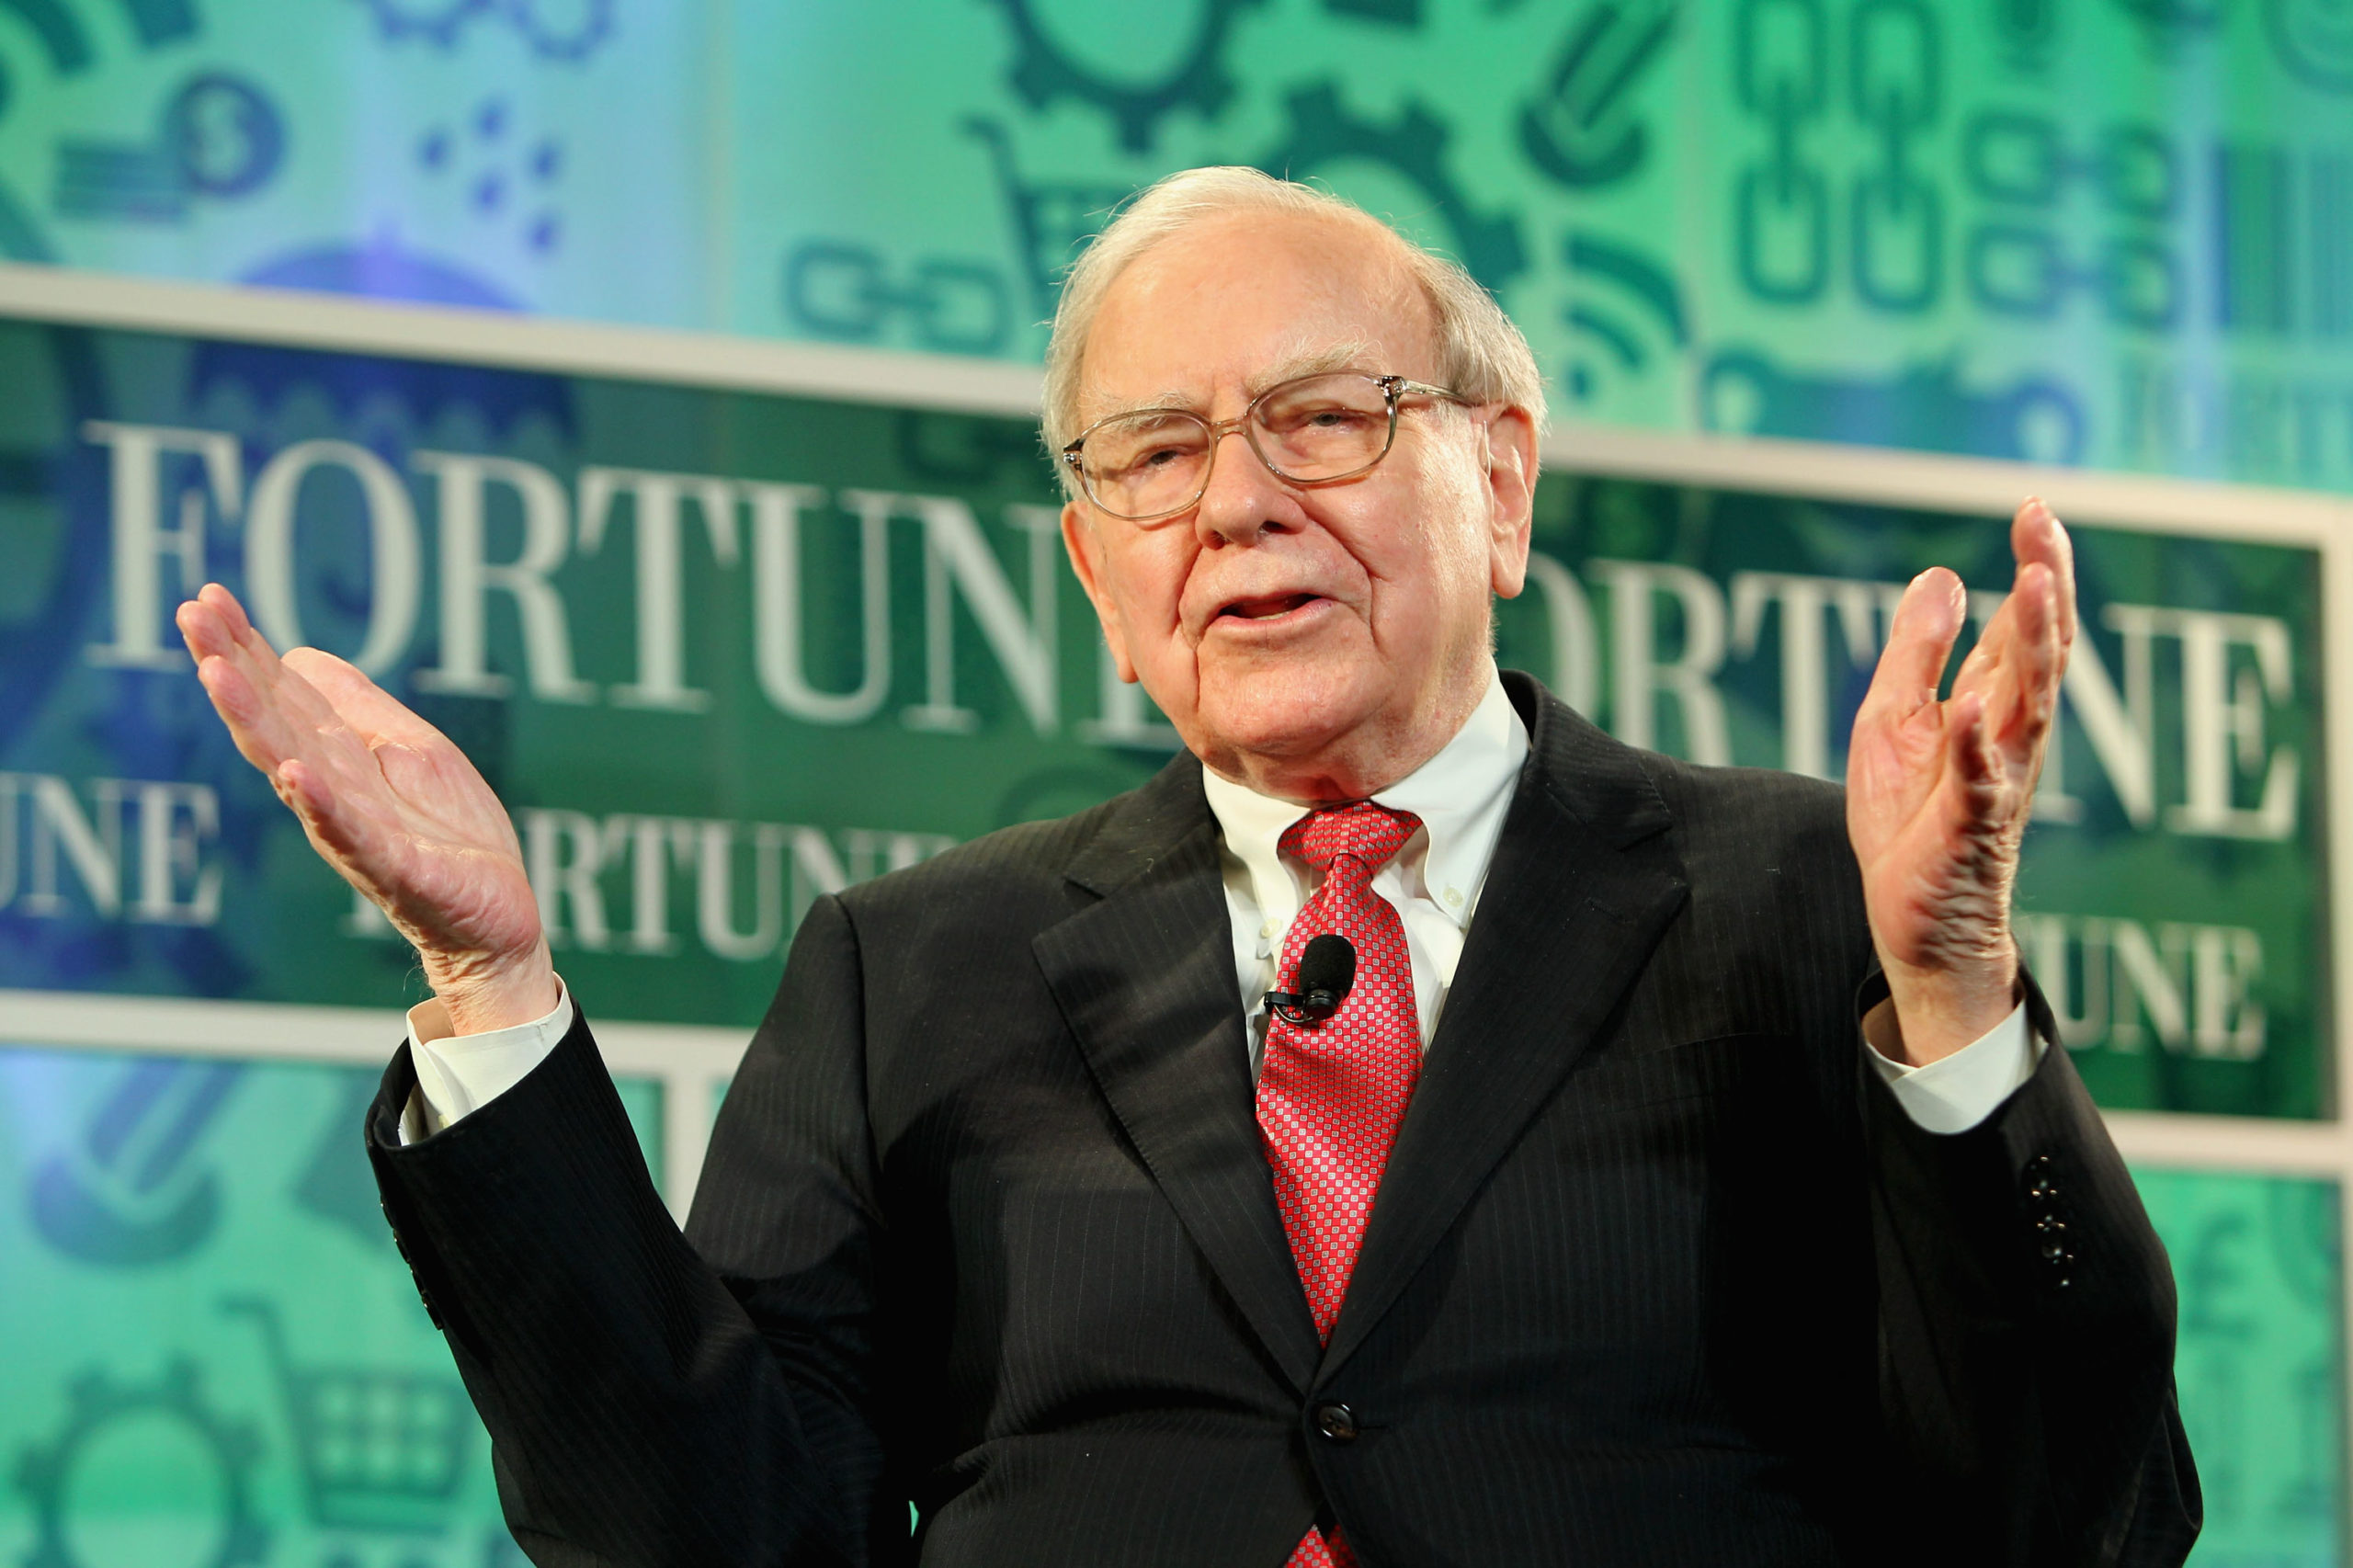 Warren Buffett speaks onstage at a Fortune summit on Oct. 16, 2013 in Washington, D.C. (Paul Morigi/Getty Images for Fortune)